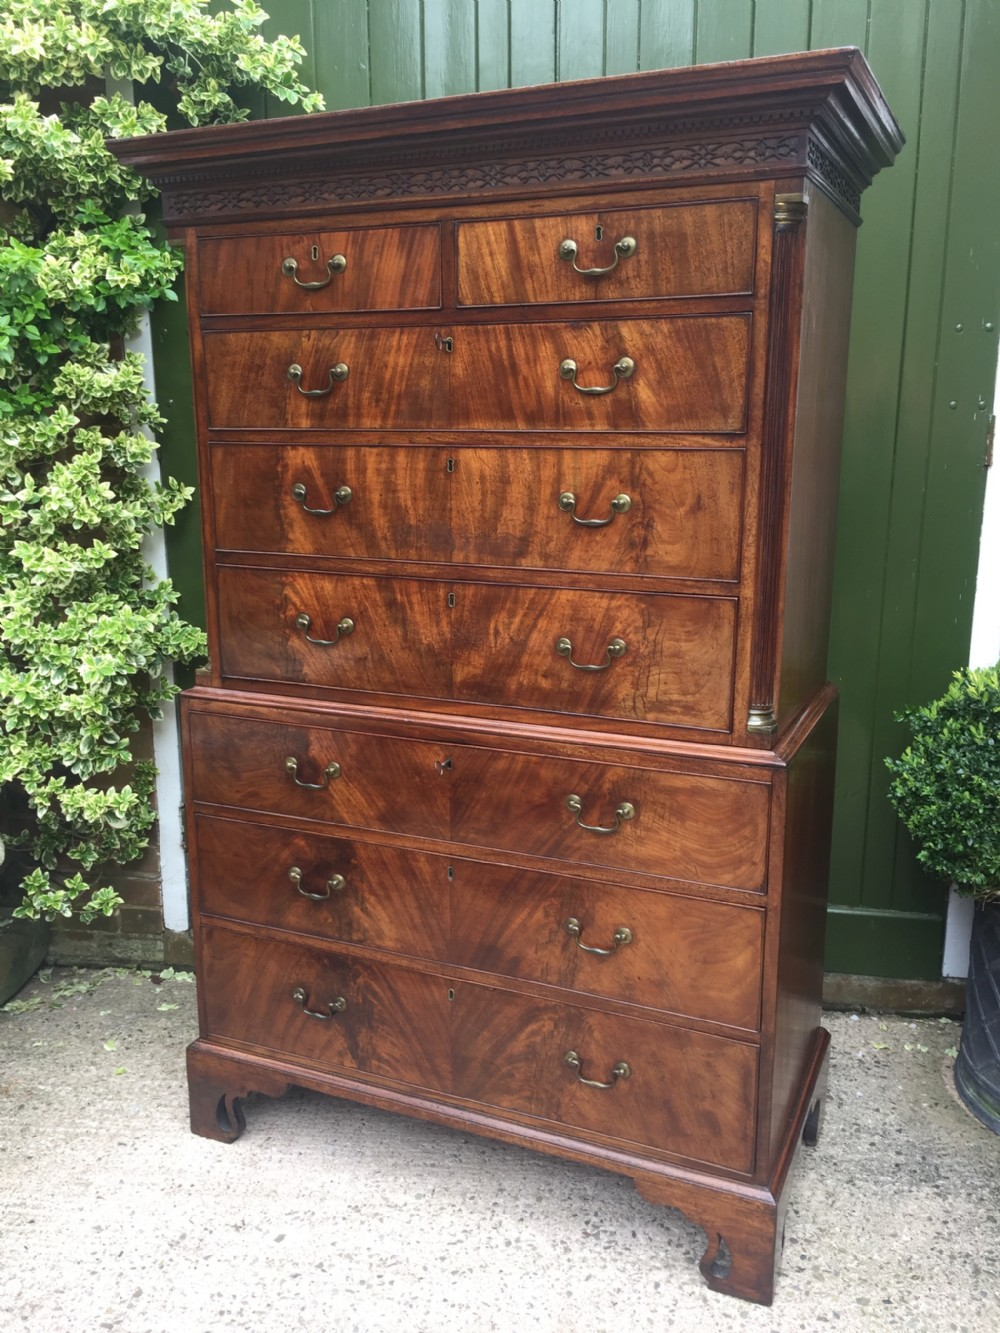 c18th george iii chippendale period mahogany chestonchest or tallboy of excellent quality